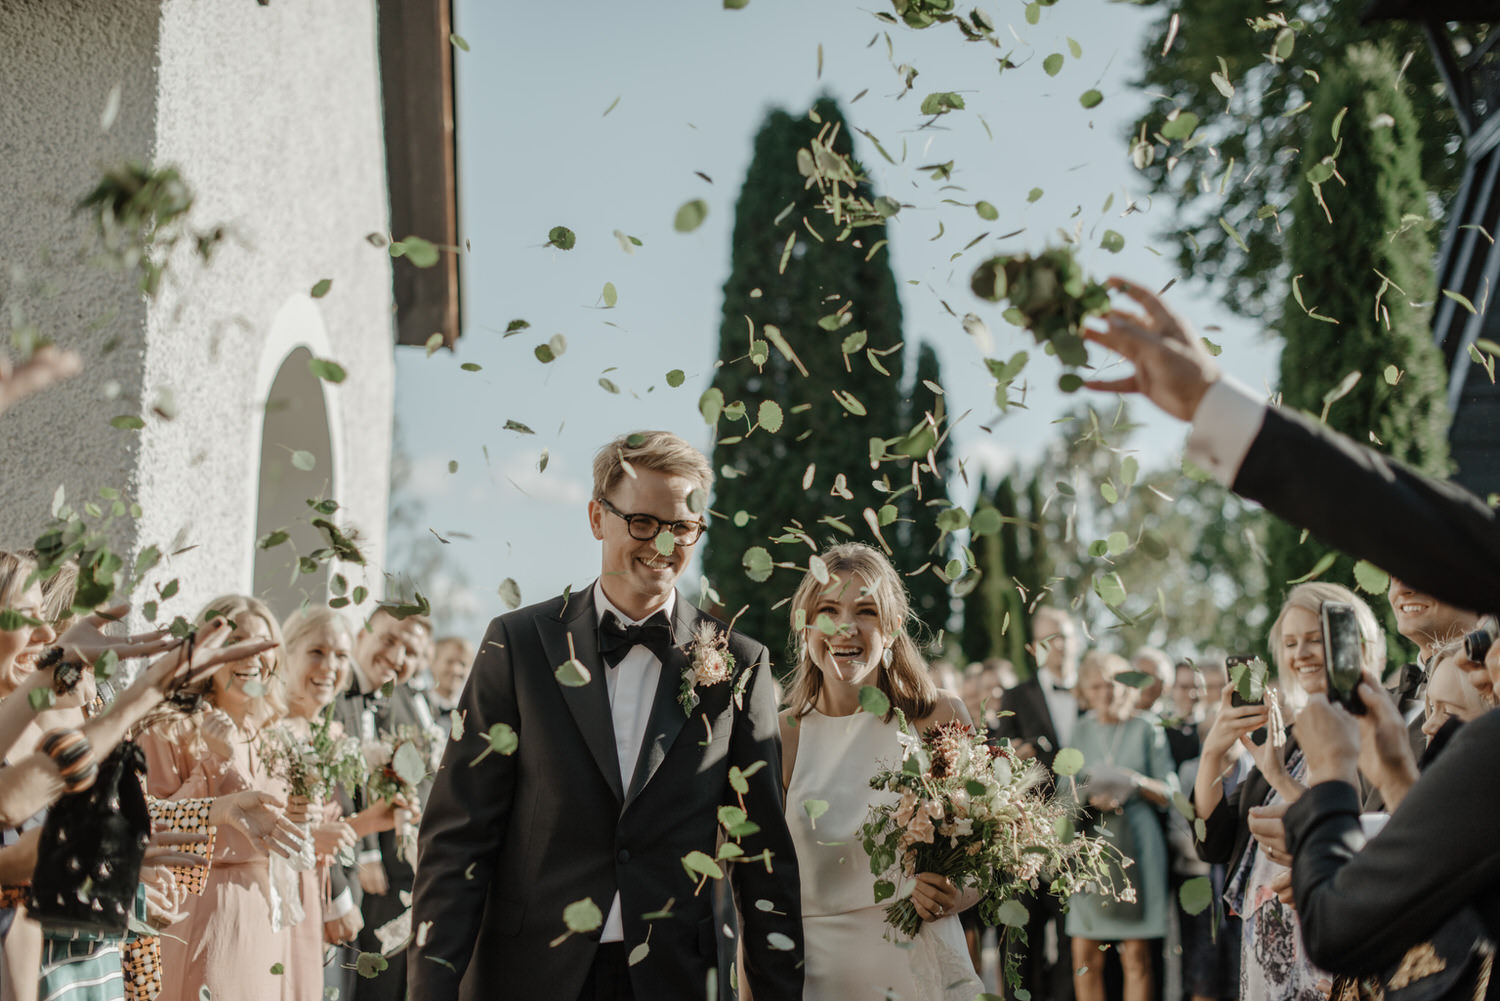 Green leaves as wedding confetti